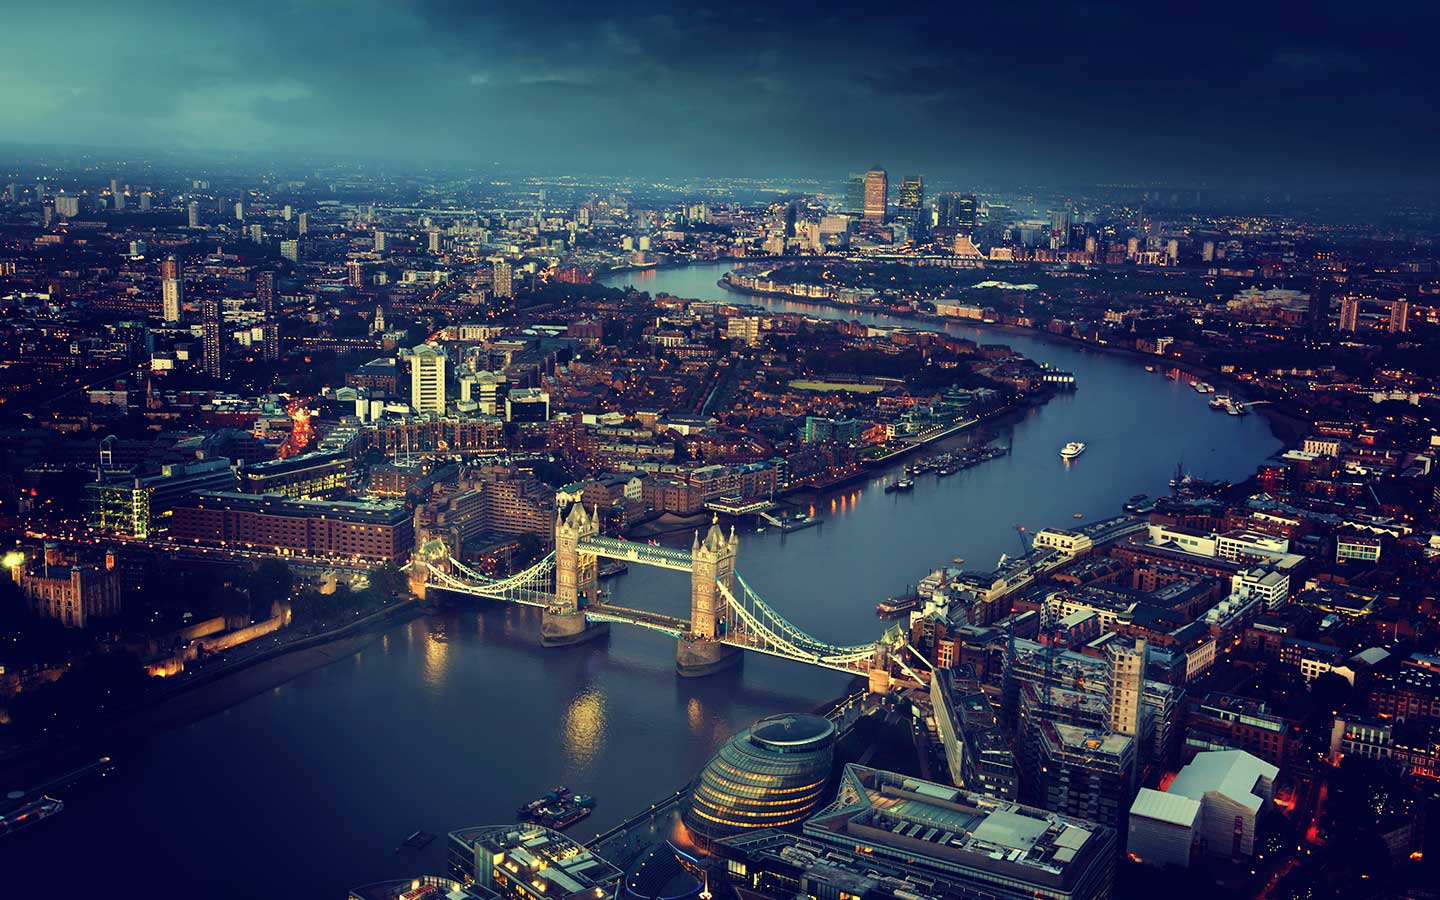 An overhead view of London